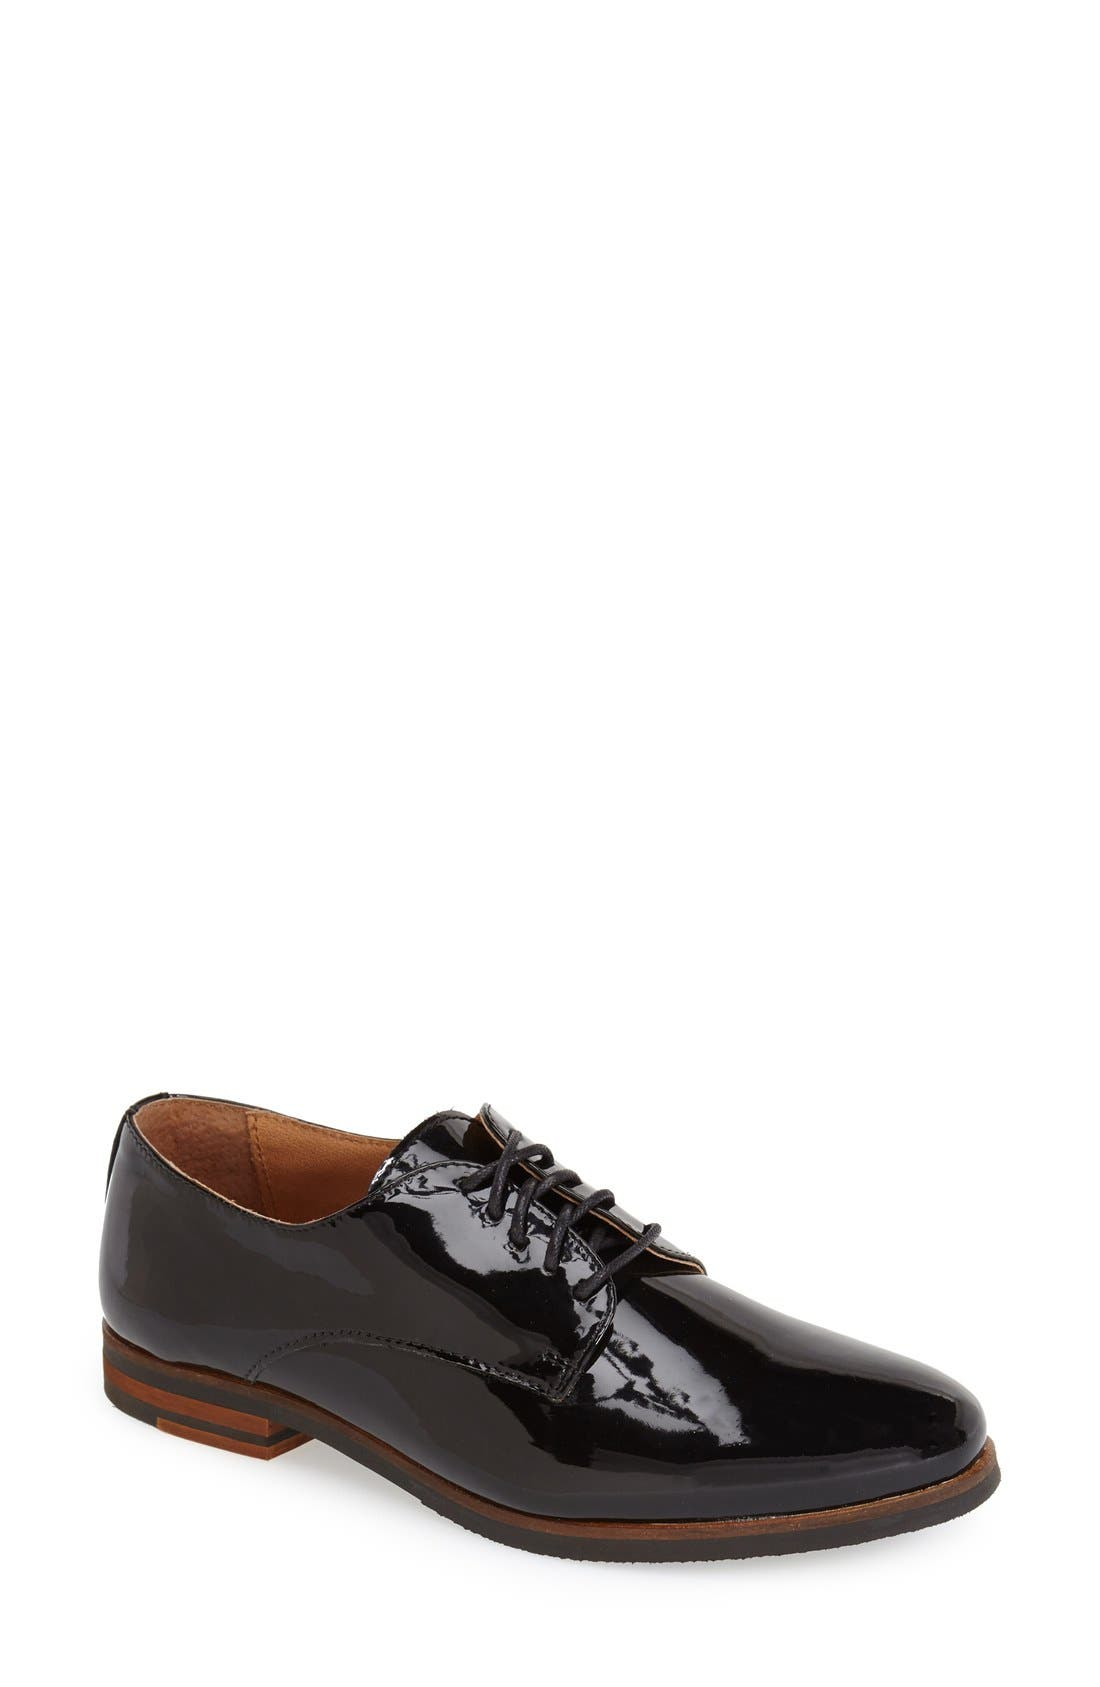 Alternate Image 1 Selected - Dune London 'Laboux' Patent Leather Oxford (Women)